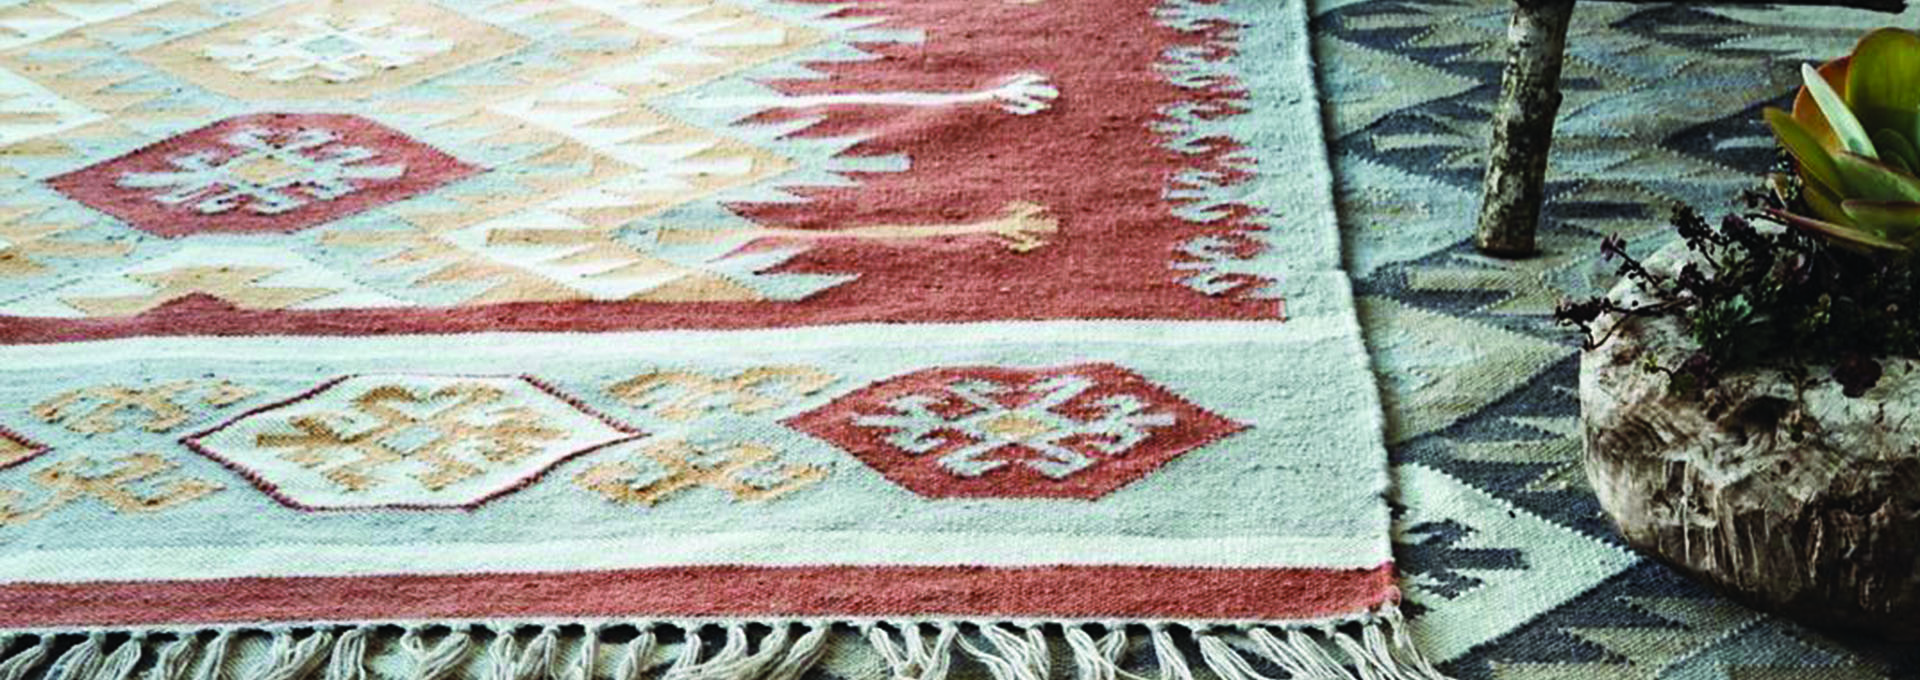 Oriental Rug Cleaning Grand Rapids, MI